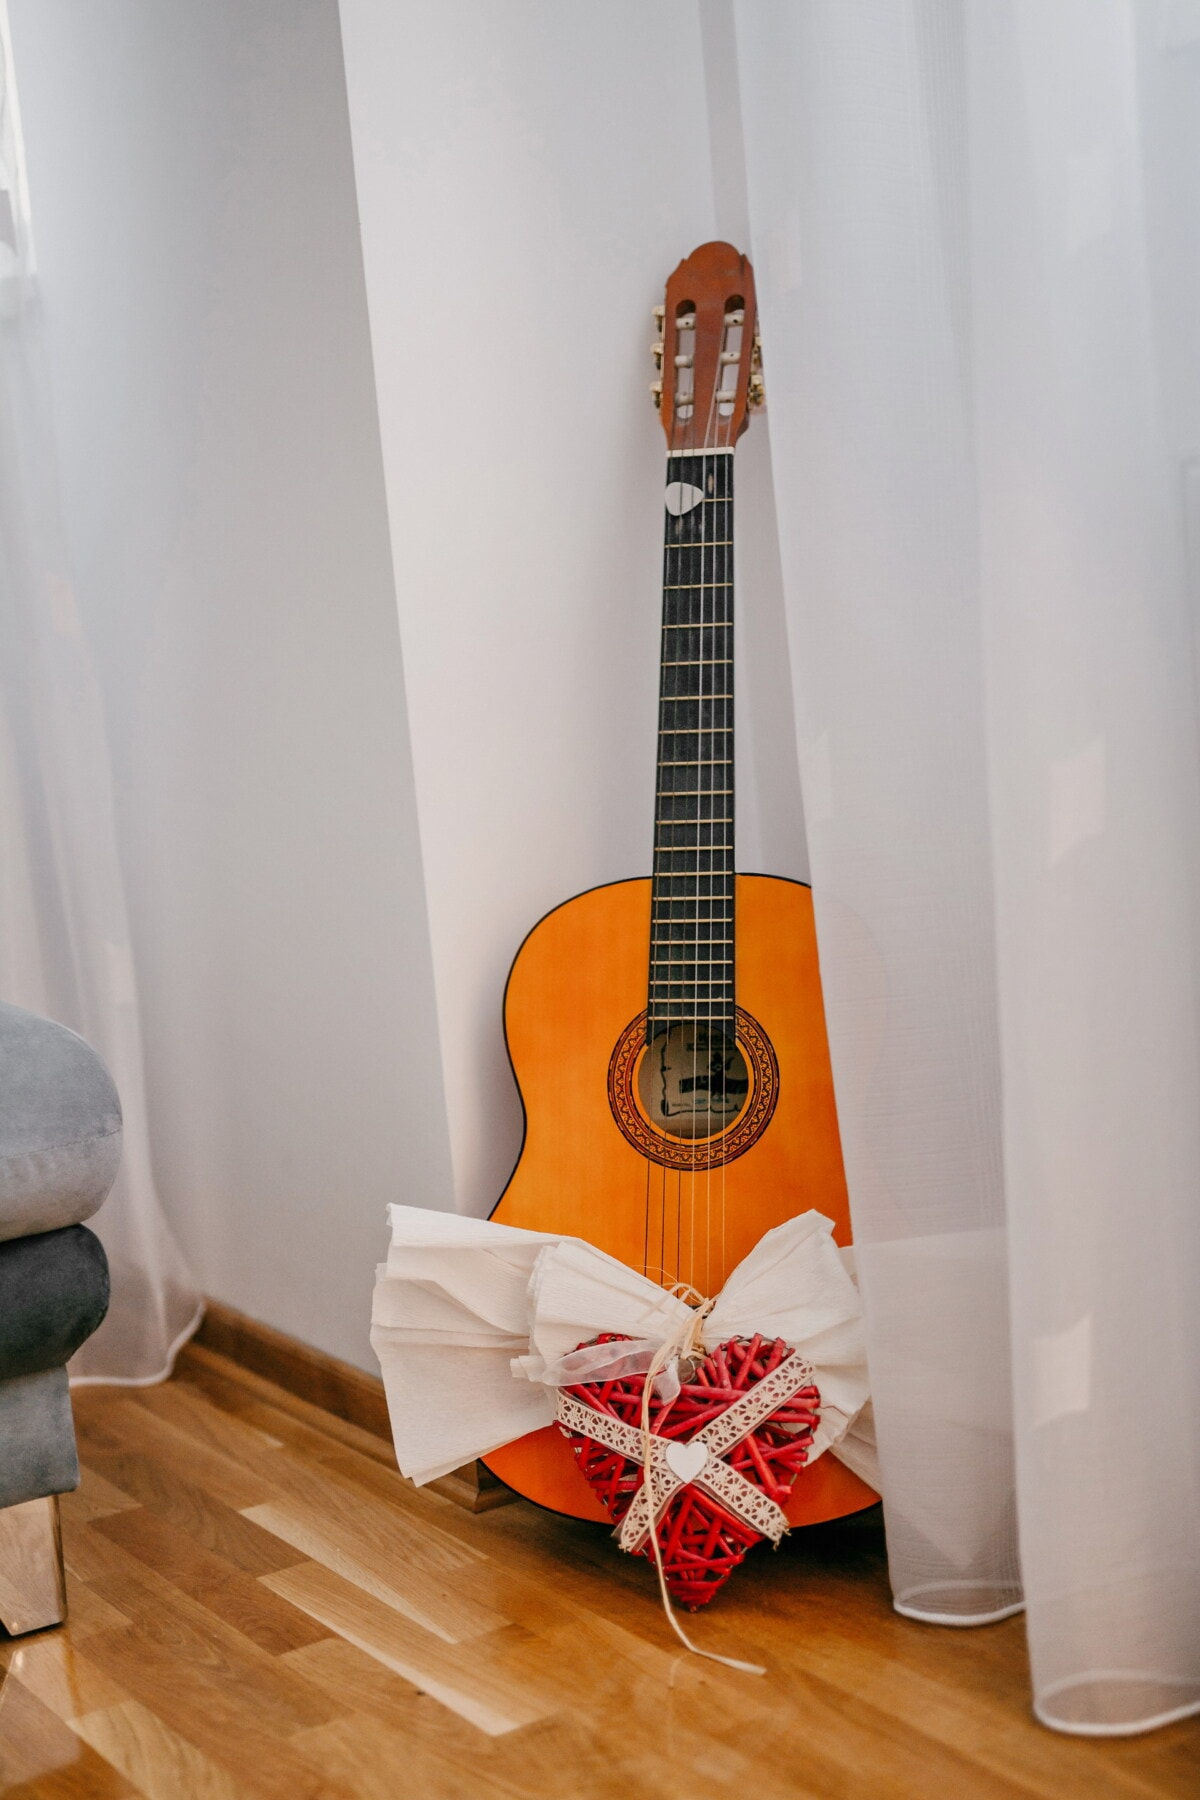 guitar, acoustic, gifts, heart, living room, musical, sound, music, string, rock